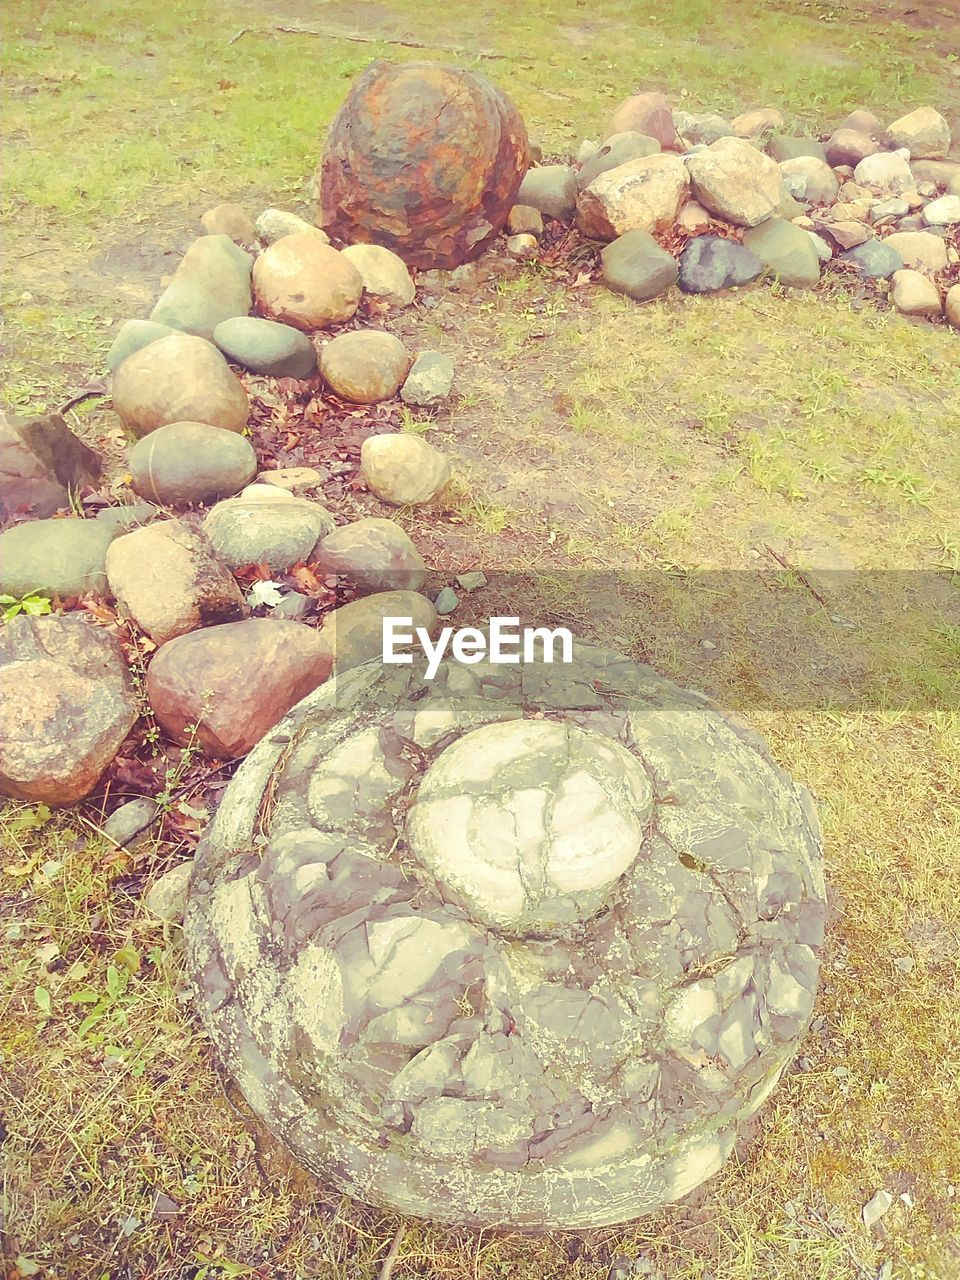 rock, solid, land, no people, nature, day, stone - object, stone, high angle view, rock - object, pebble, plant, water, close-up, outdoors, shell, food and drink, food, shape, beauty in nature